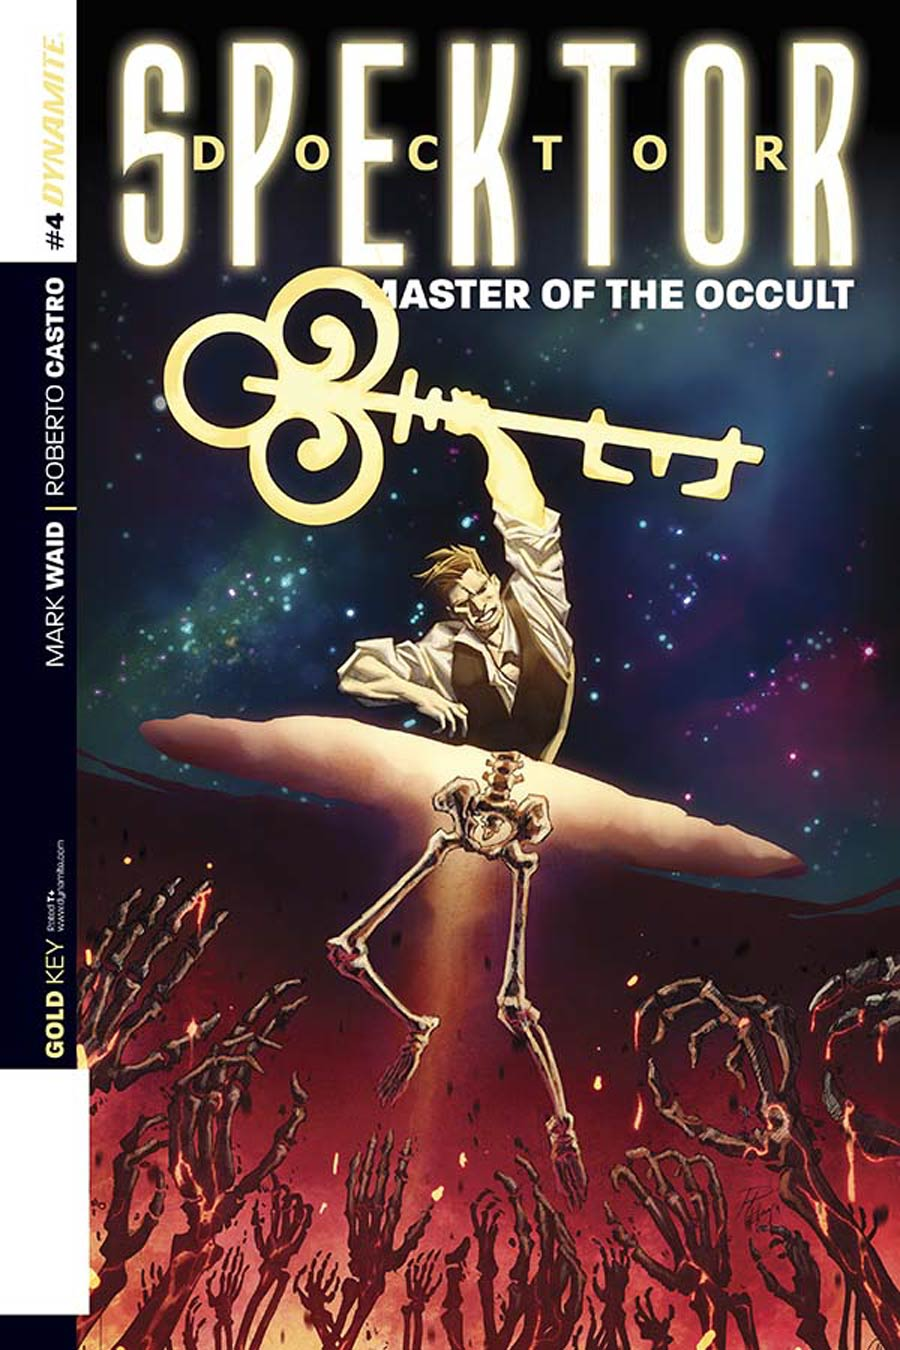 Doctor Spektor Master Of The Occult #4 Cover C Incentive Phil Hester Variant Cover